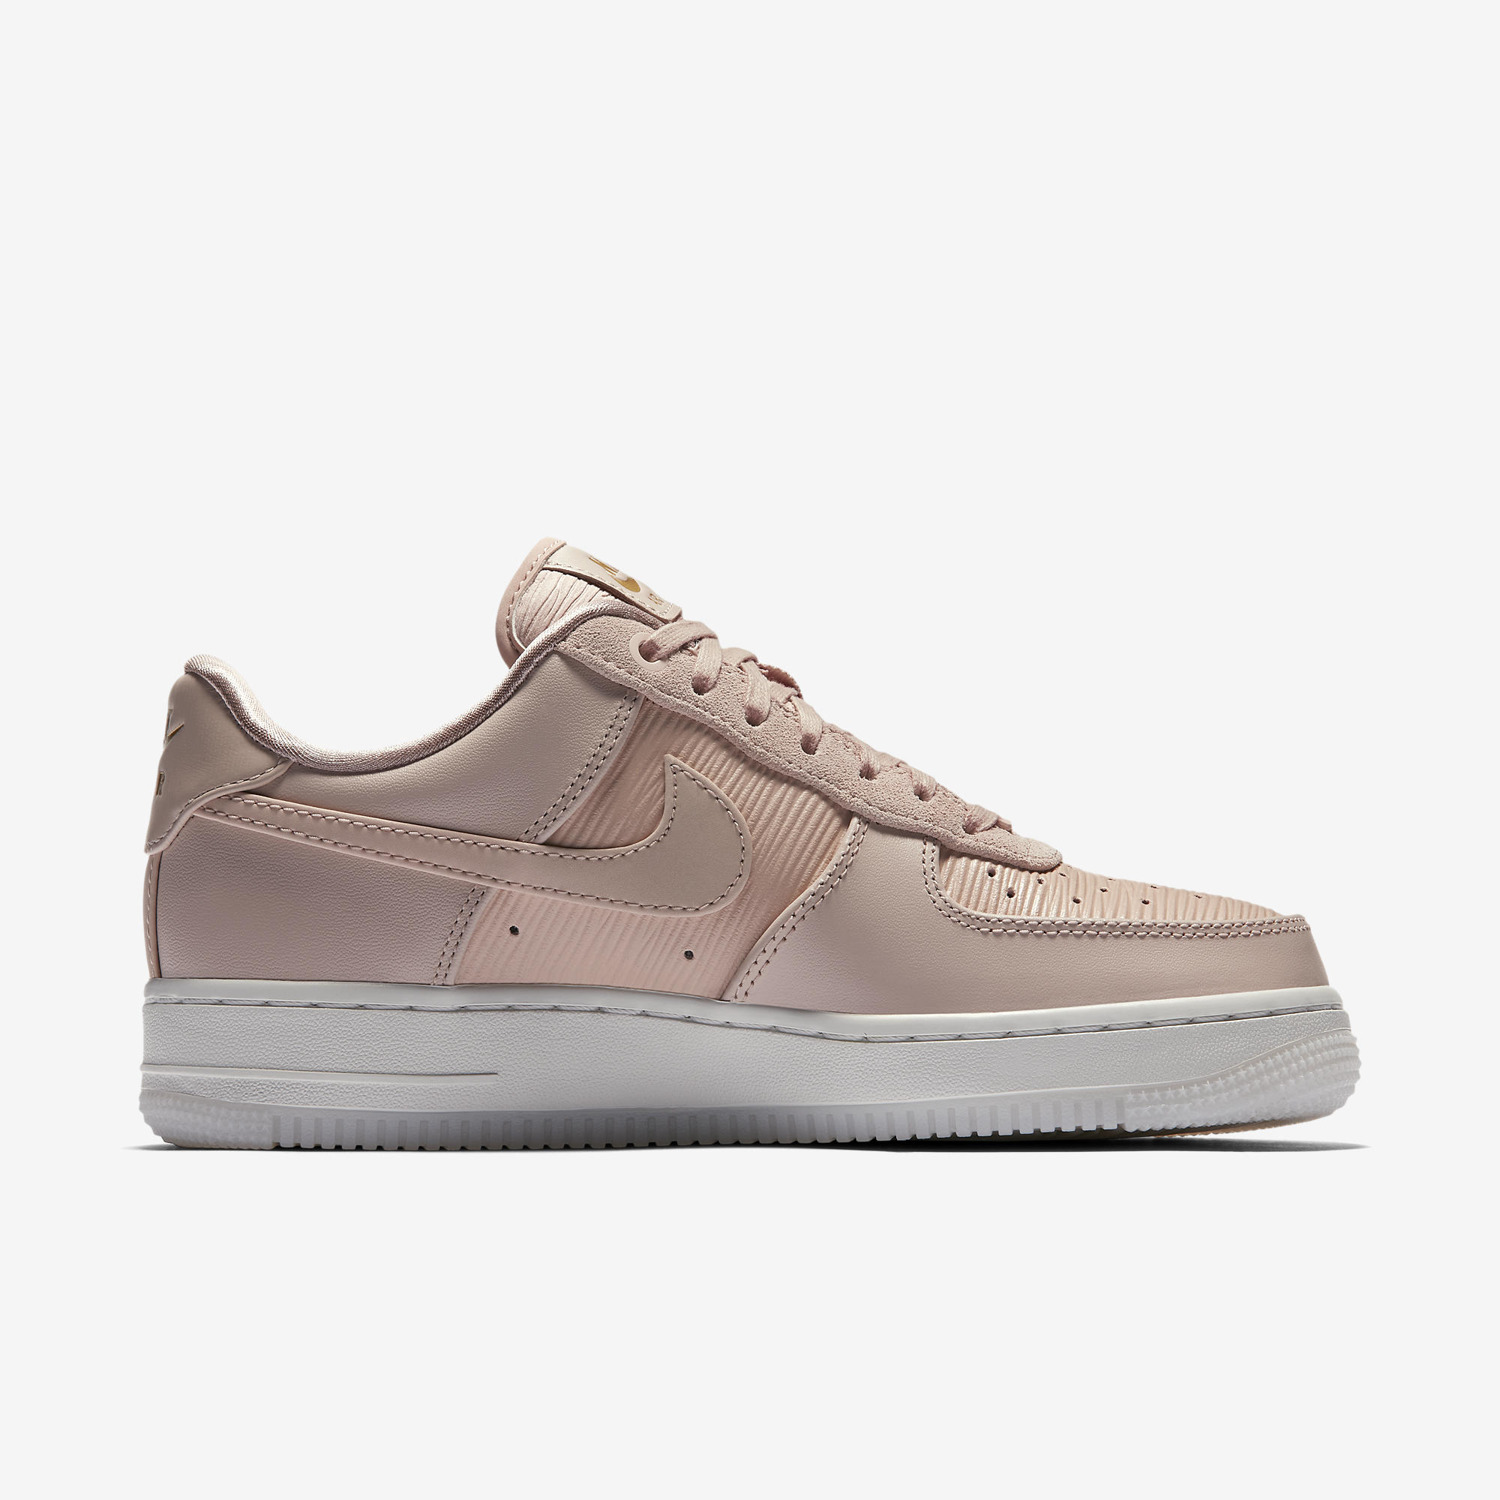 separation shoes e243f 2ea95 ... Buty damskie Nike Air Force 1 07 Lux Particle Beige 898889 201 ...